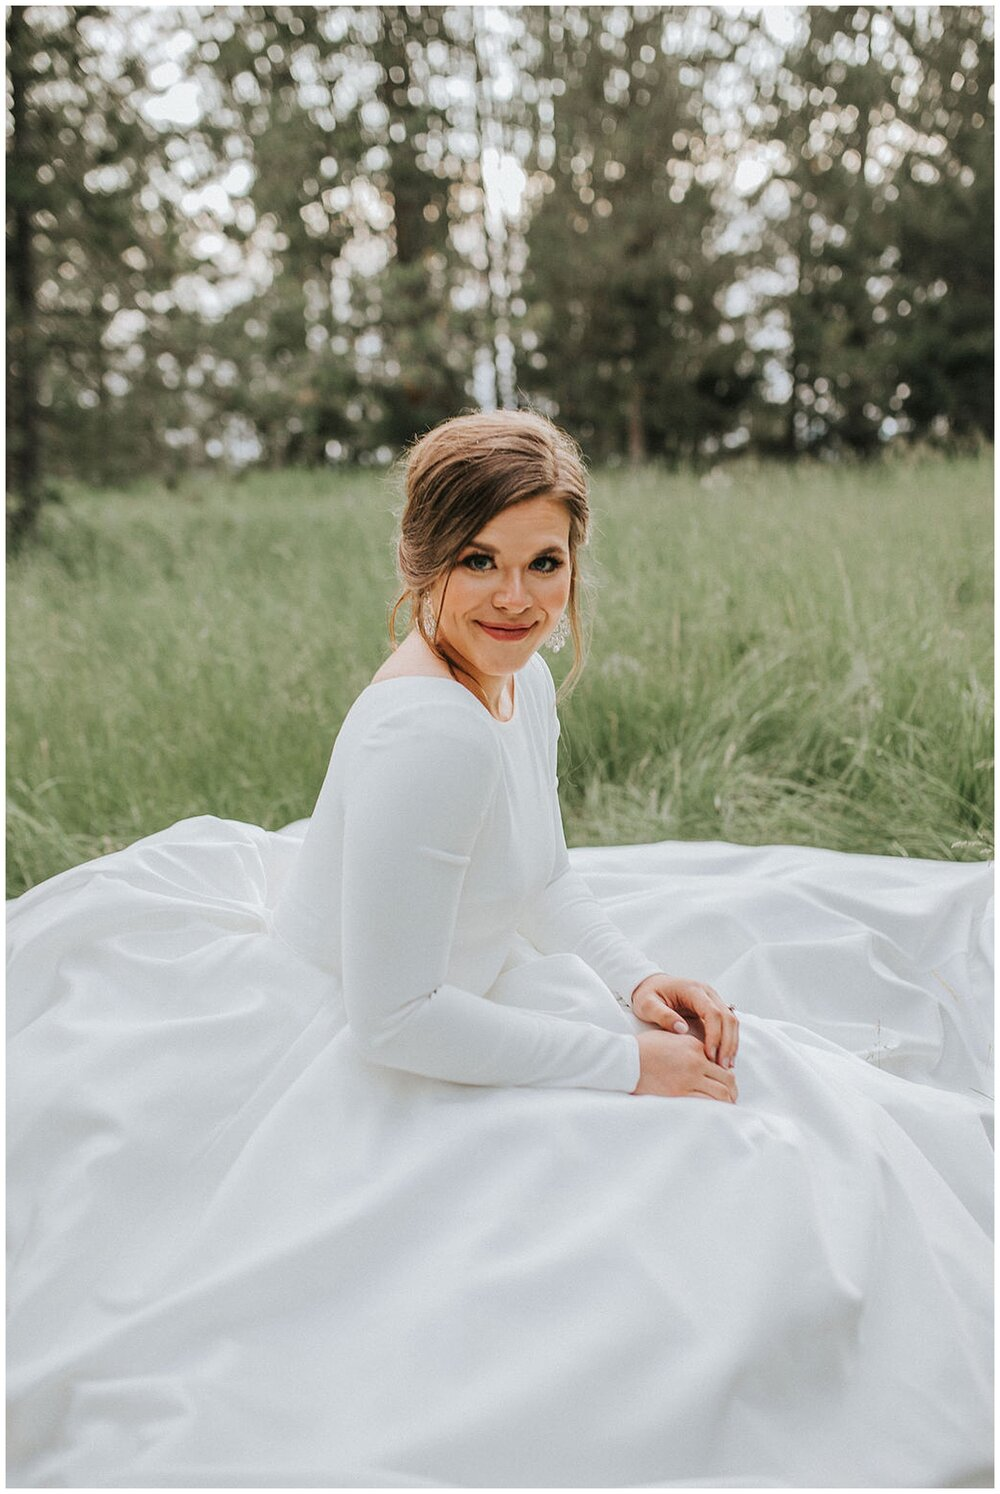 southern_ourdoor_wedding_bridal_bride_alone_sitting_grass_knoxville_field_summer_beautiful_